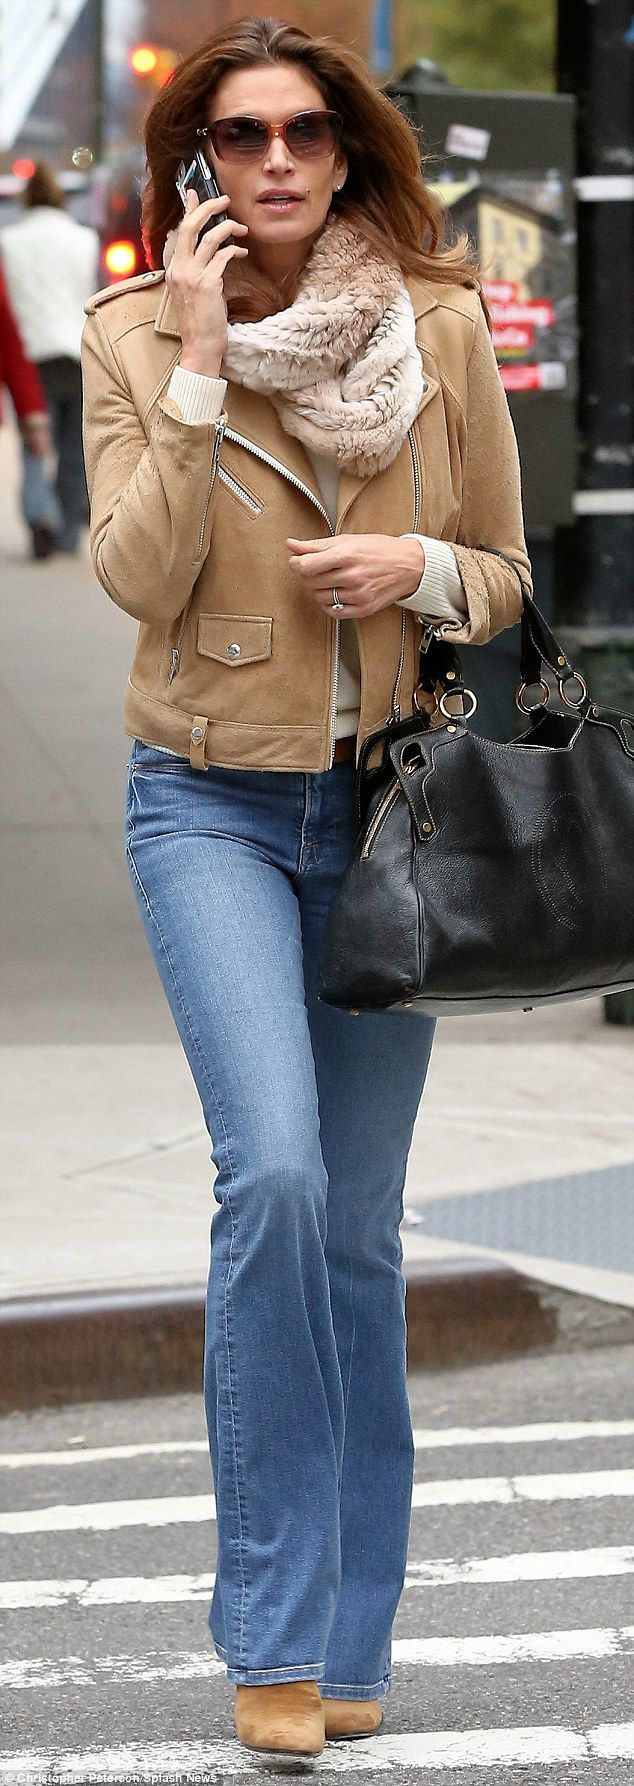 Classic look: Cindy Crawford wears boot cut jeans like a pro...